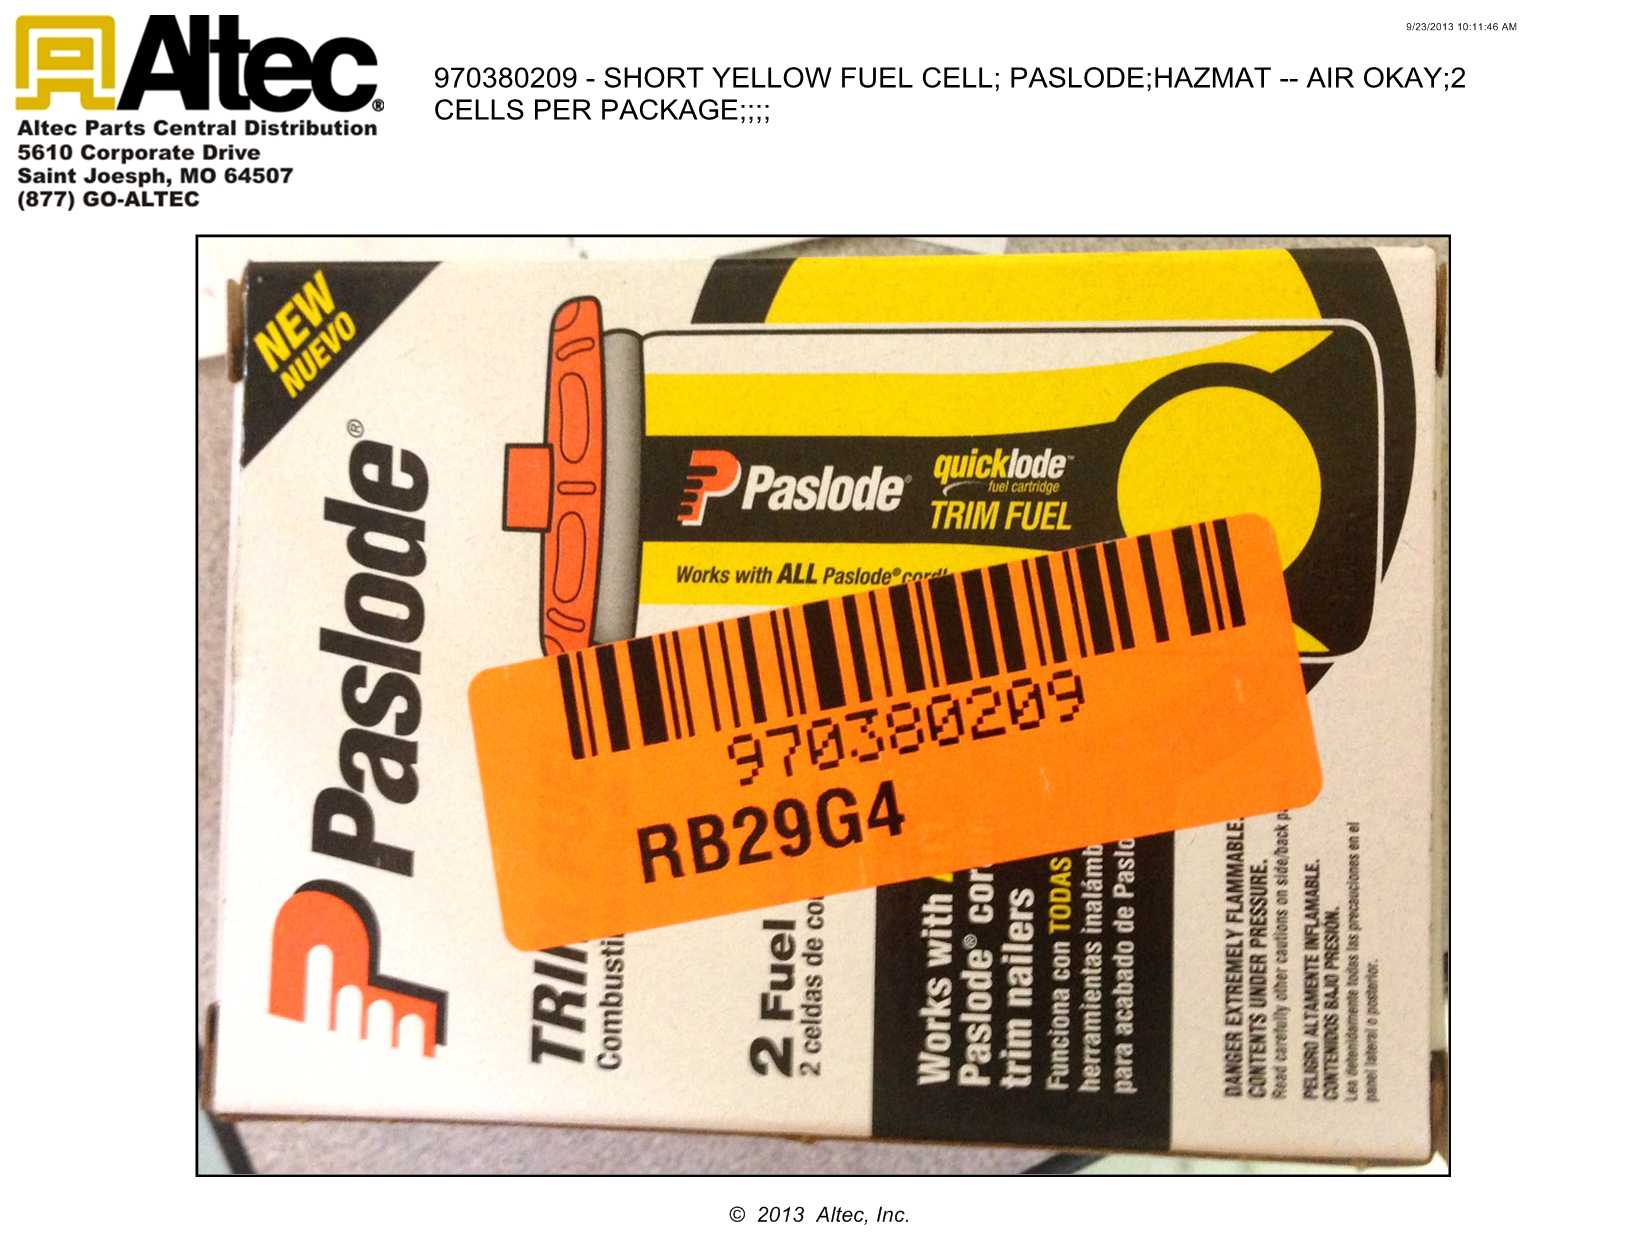 Paslode 816007 Universal Trim Yellow Fuel Cell 2 Pack